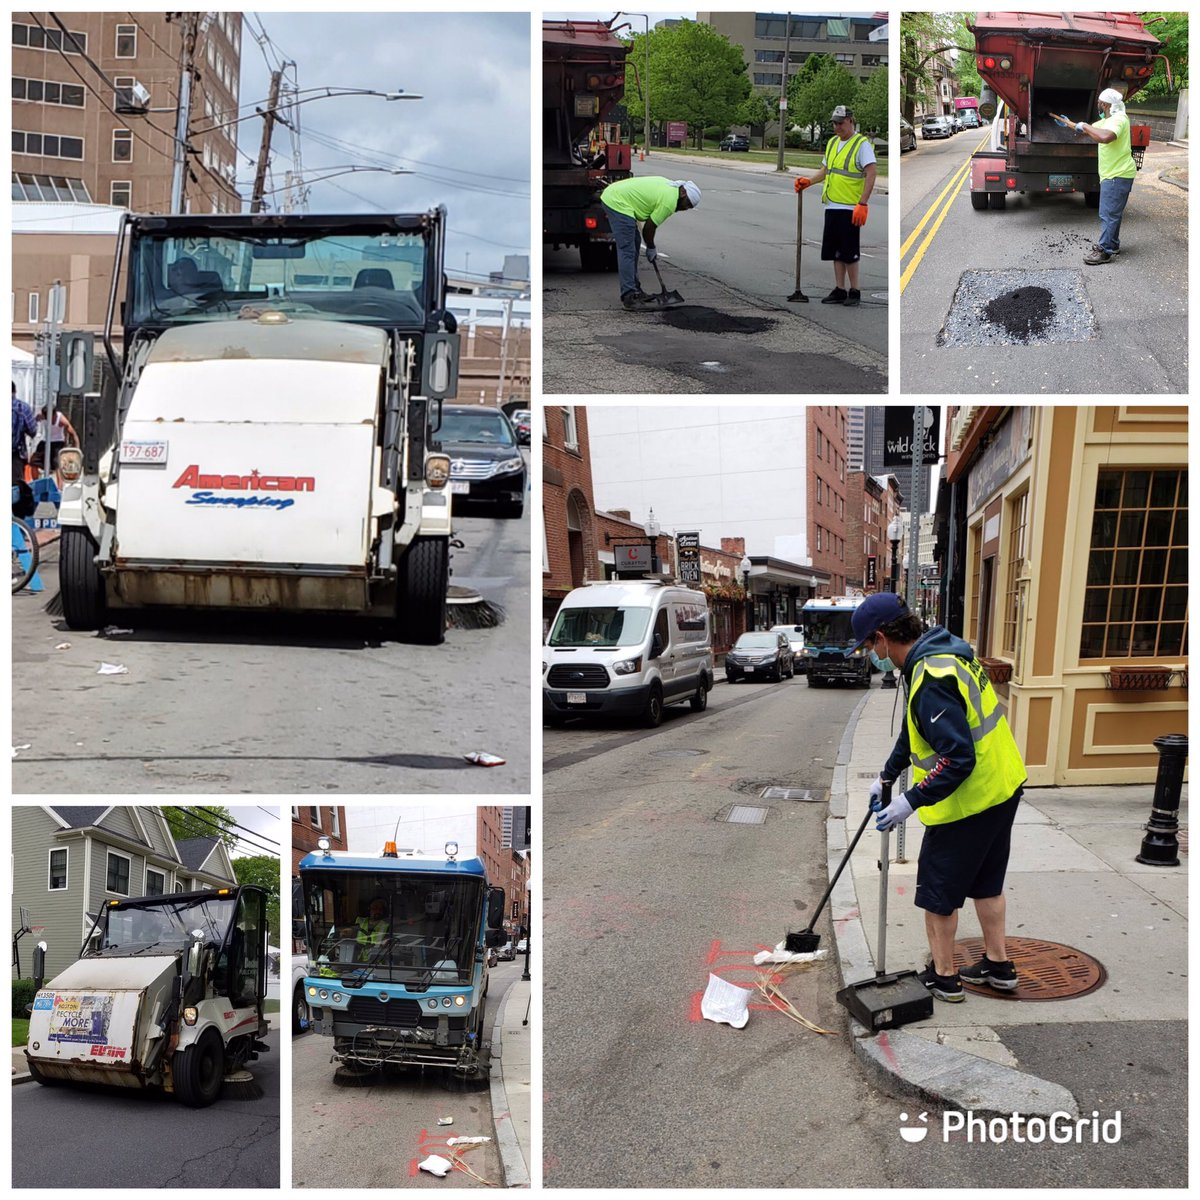 PWD crews continue with cleaning, sweeping and patching operations in the @CityOfBoston. Pics below from the #NorthEnd, #WestRoxbury, #BackBay, #Charlestown and the #SouthEnd.pic.twitter.com/RQwdhFC6mV